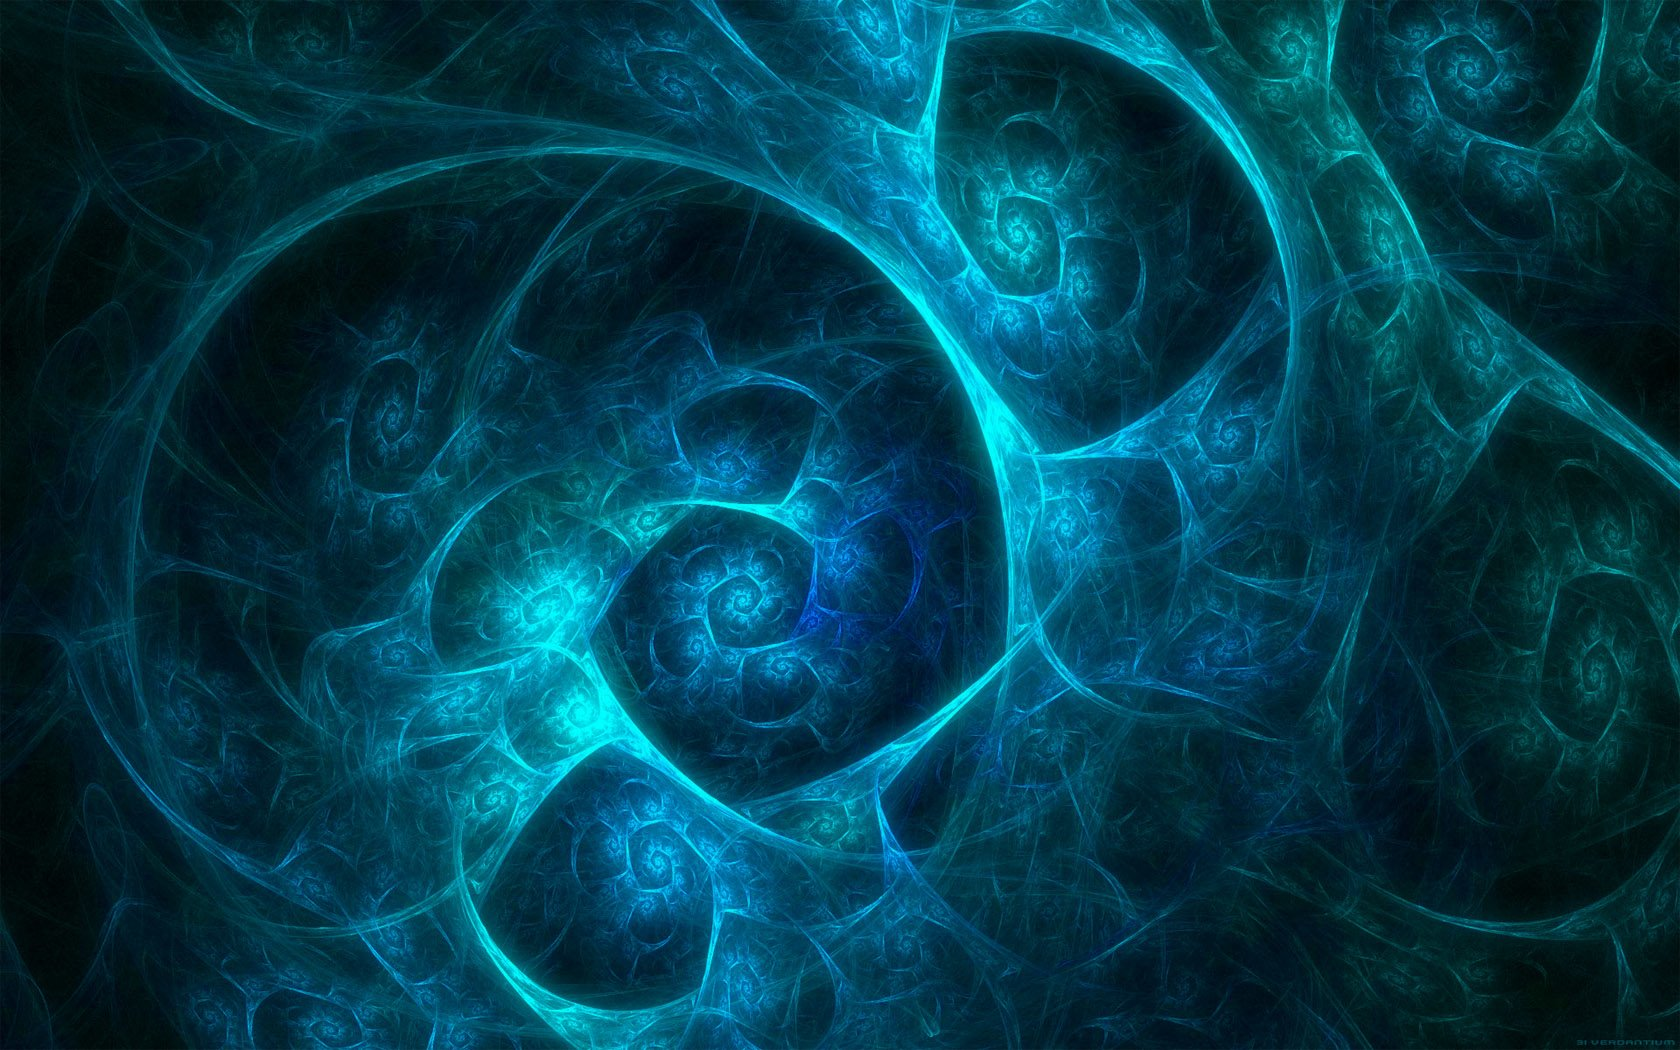 Abstract - Blue  Fractal Abstract Artistic Digital Art Wallpaper